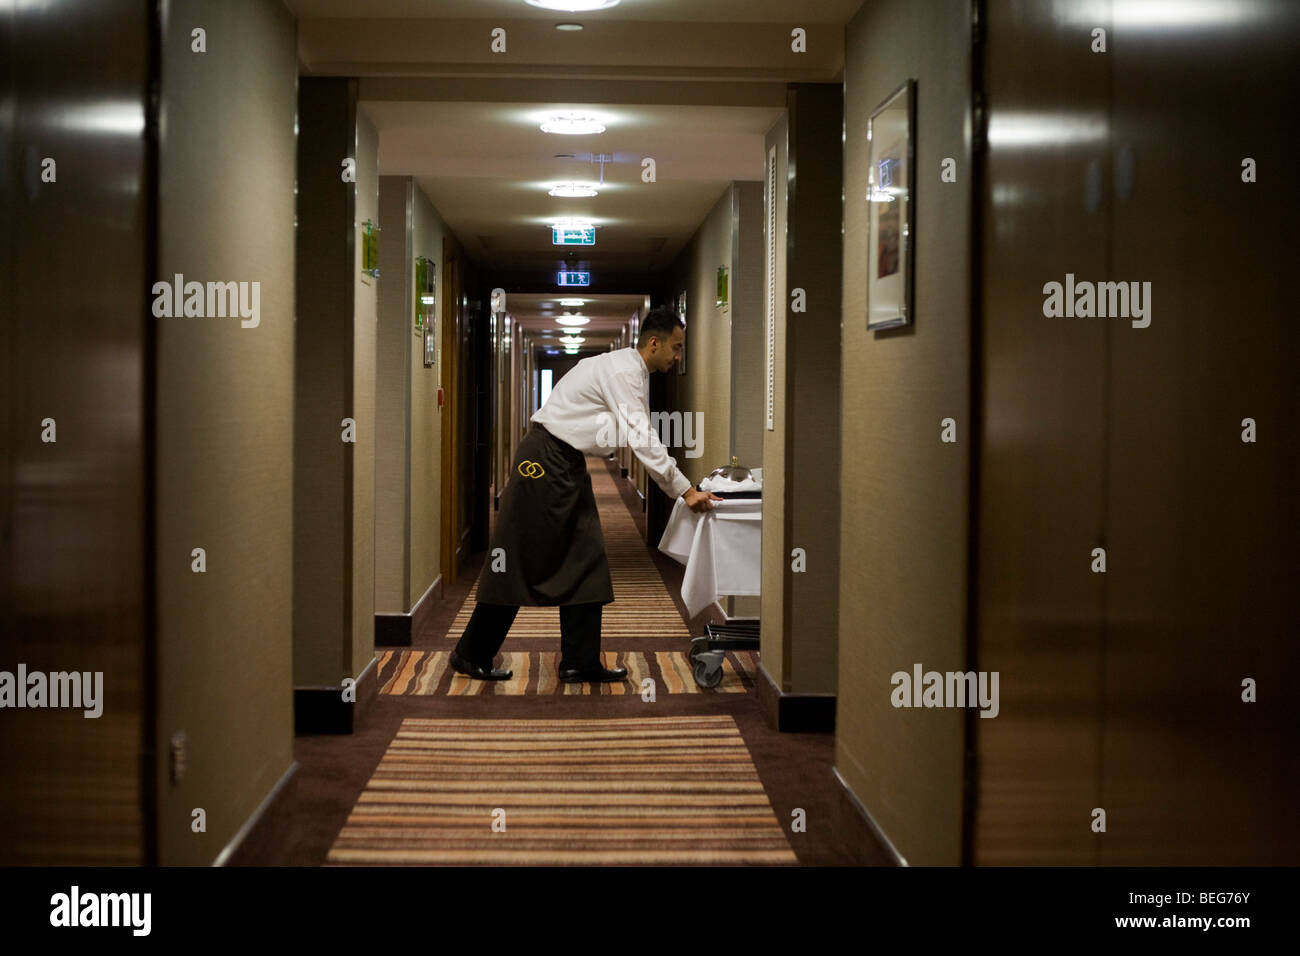 A hotel waiter delivers a meal ordered from room service in the Heathrow Airport Sofitel, attached to Terminal 5. Stock Photo